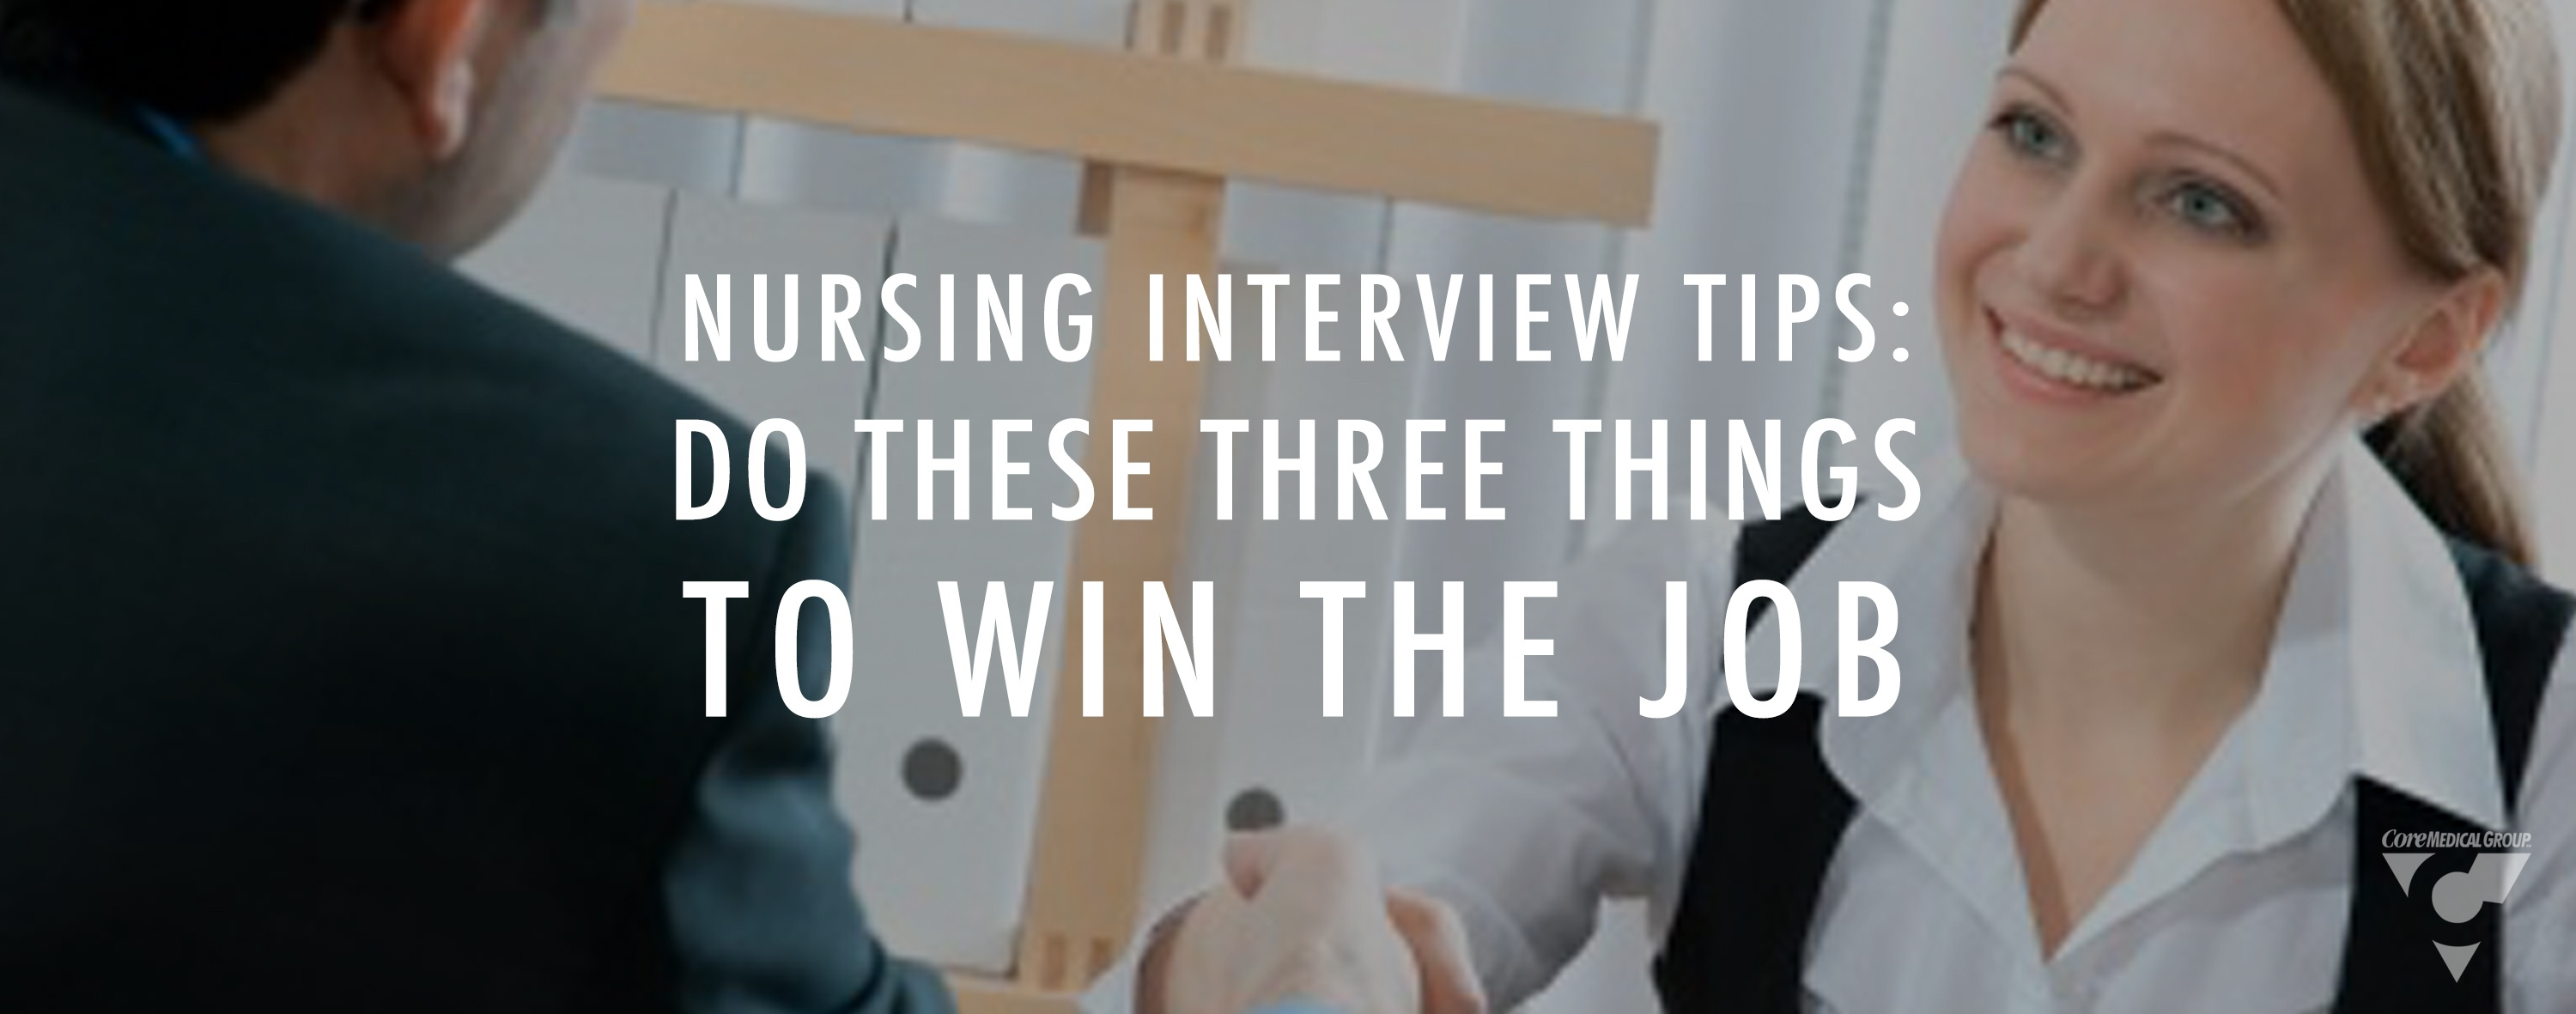 CMG_Blog_FeaturedImages_04.18_NursingInterviewTips_Blog_R1